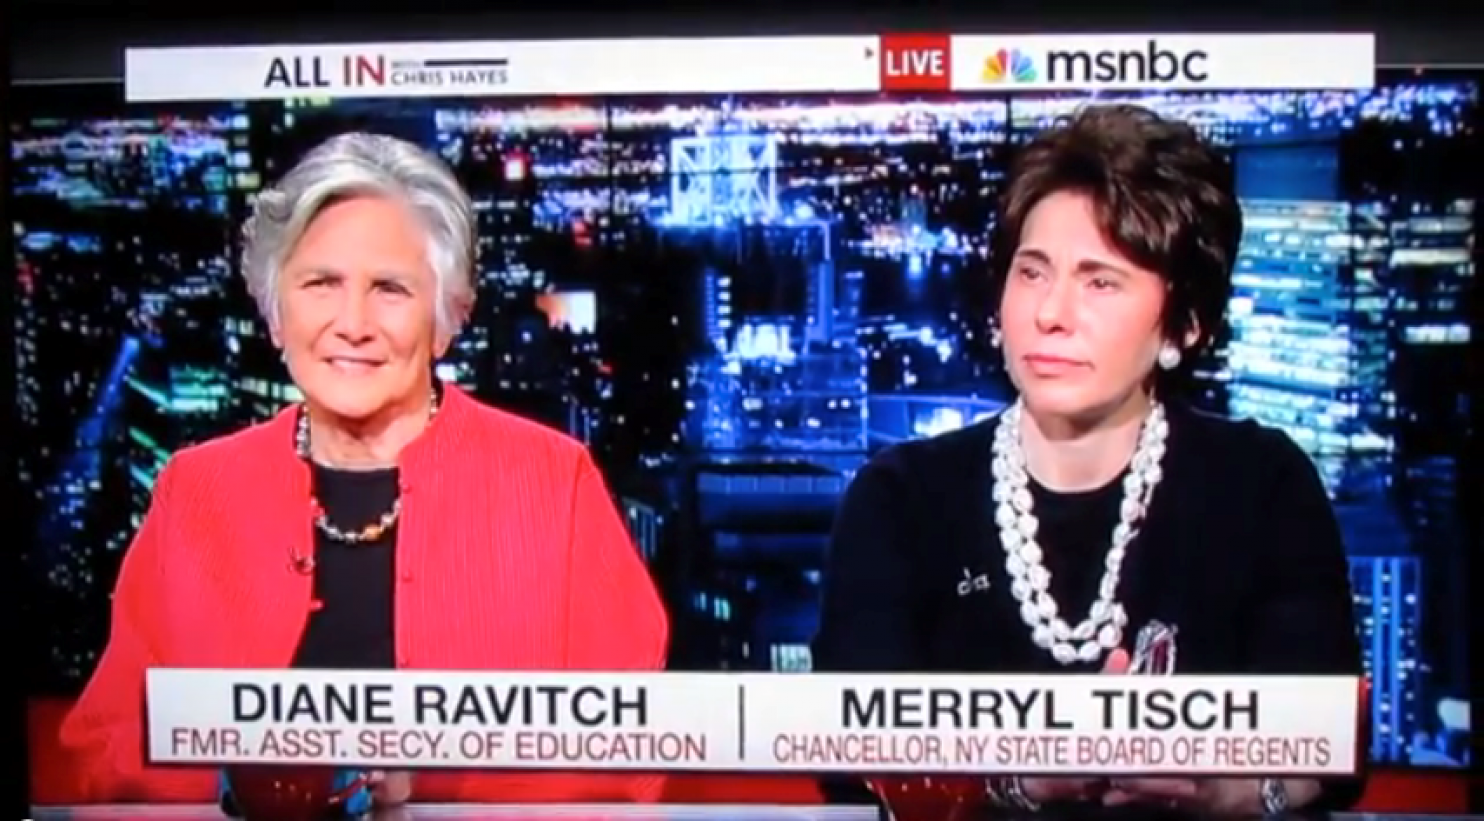 Why the debate between Diane Ravitch and Merryl Tisch was remarkable - The Washington Post